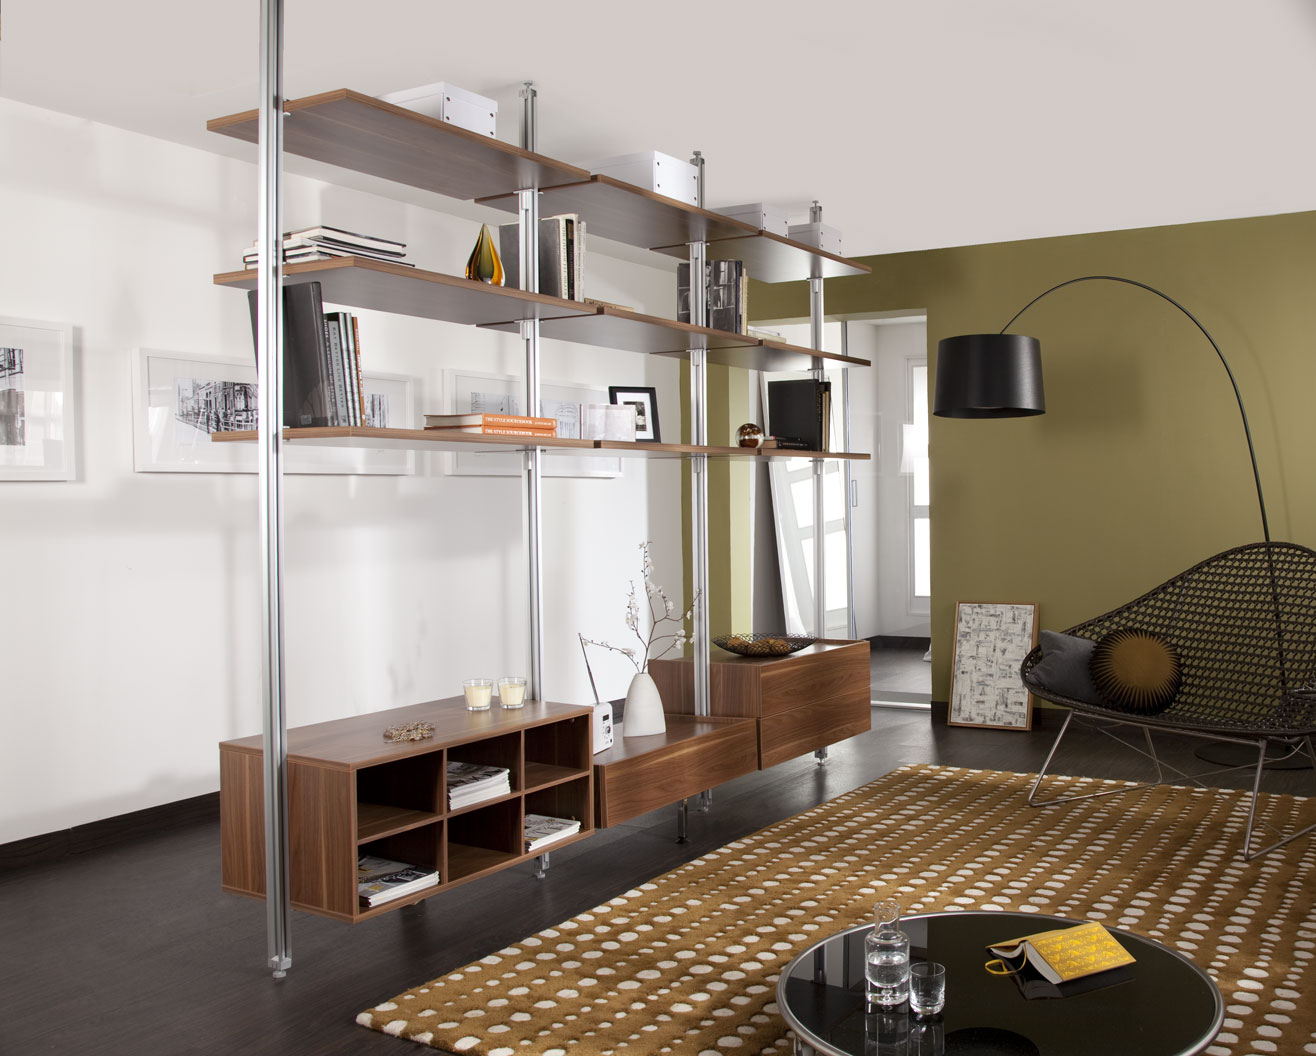 customizable wardrobe innards shelves and drawers in west lothian. Black Bedroom Furniture Sets. Home Design Ideas